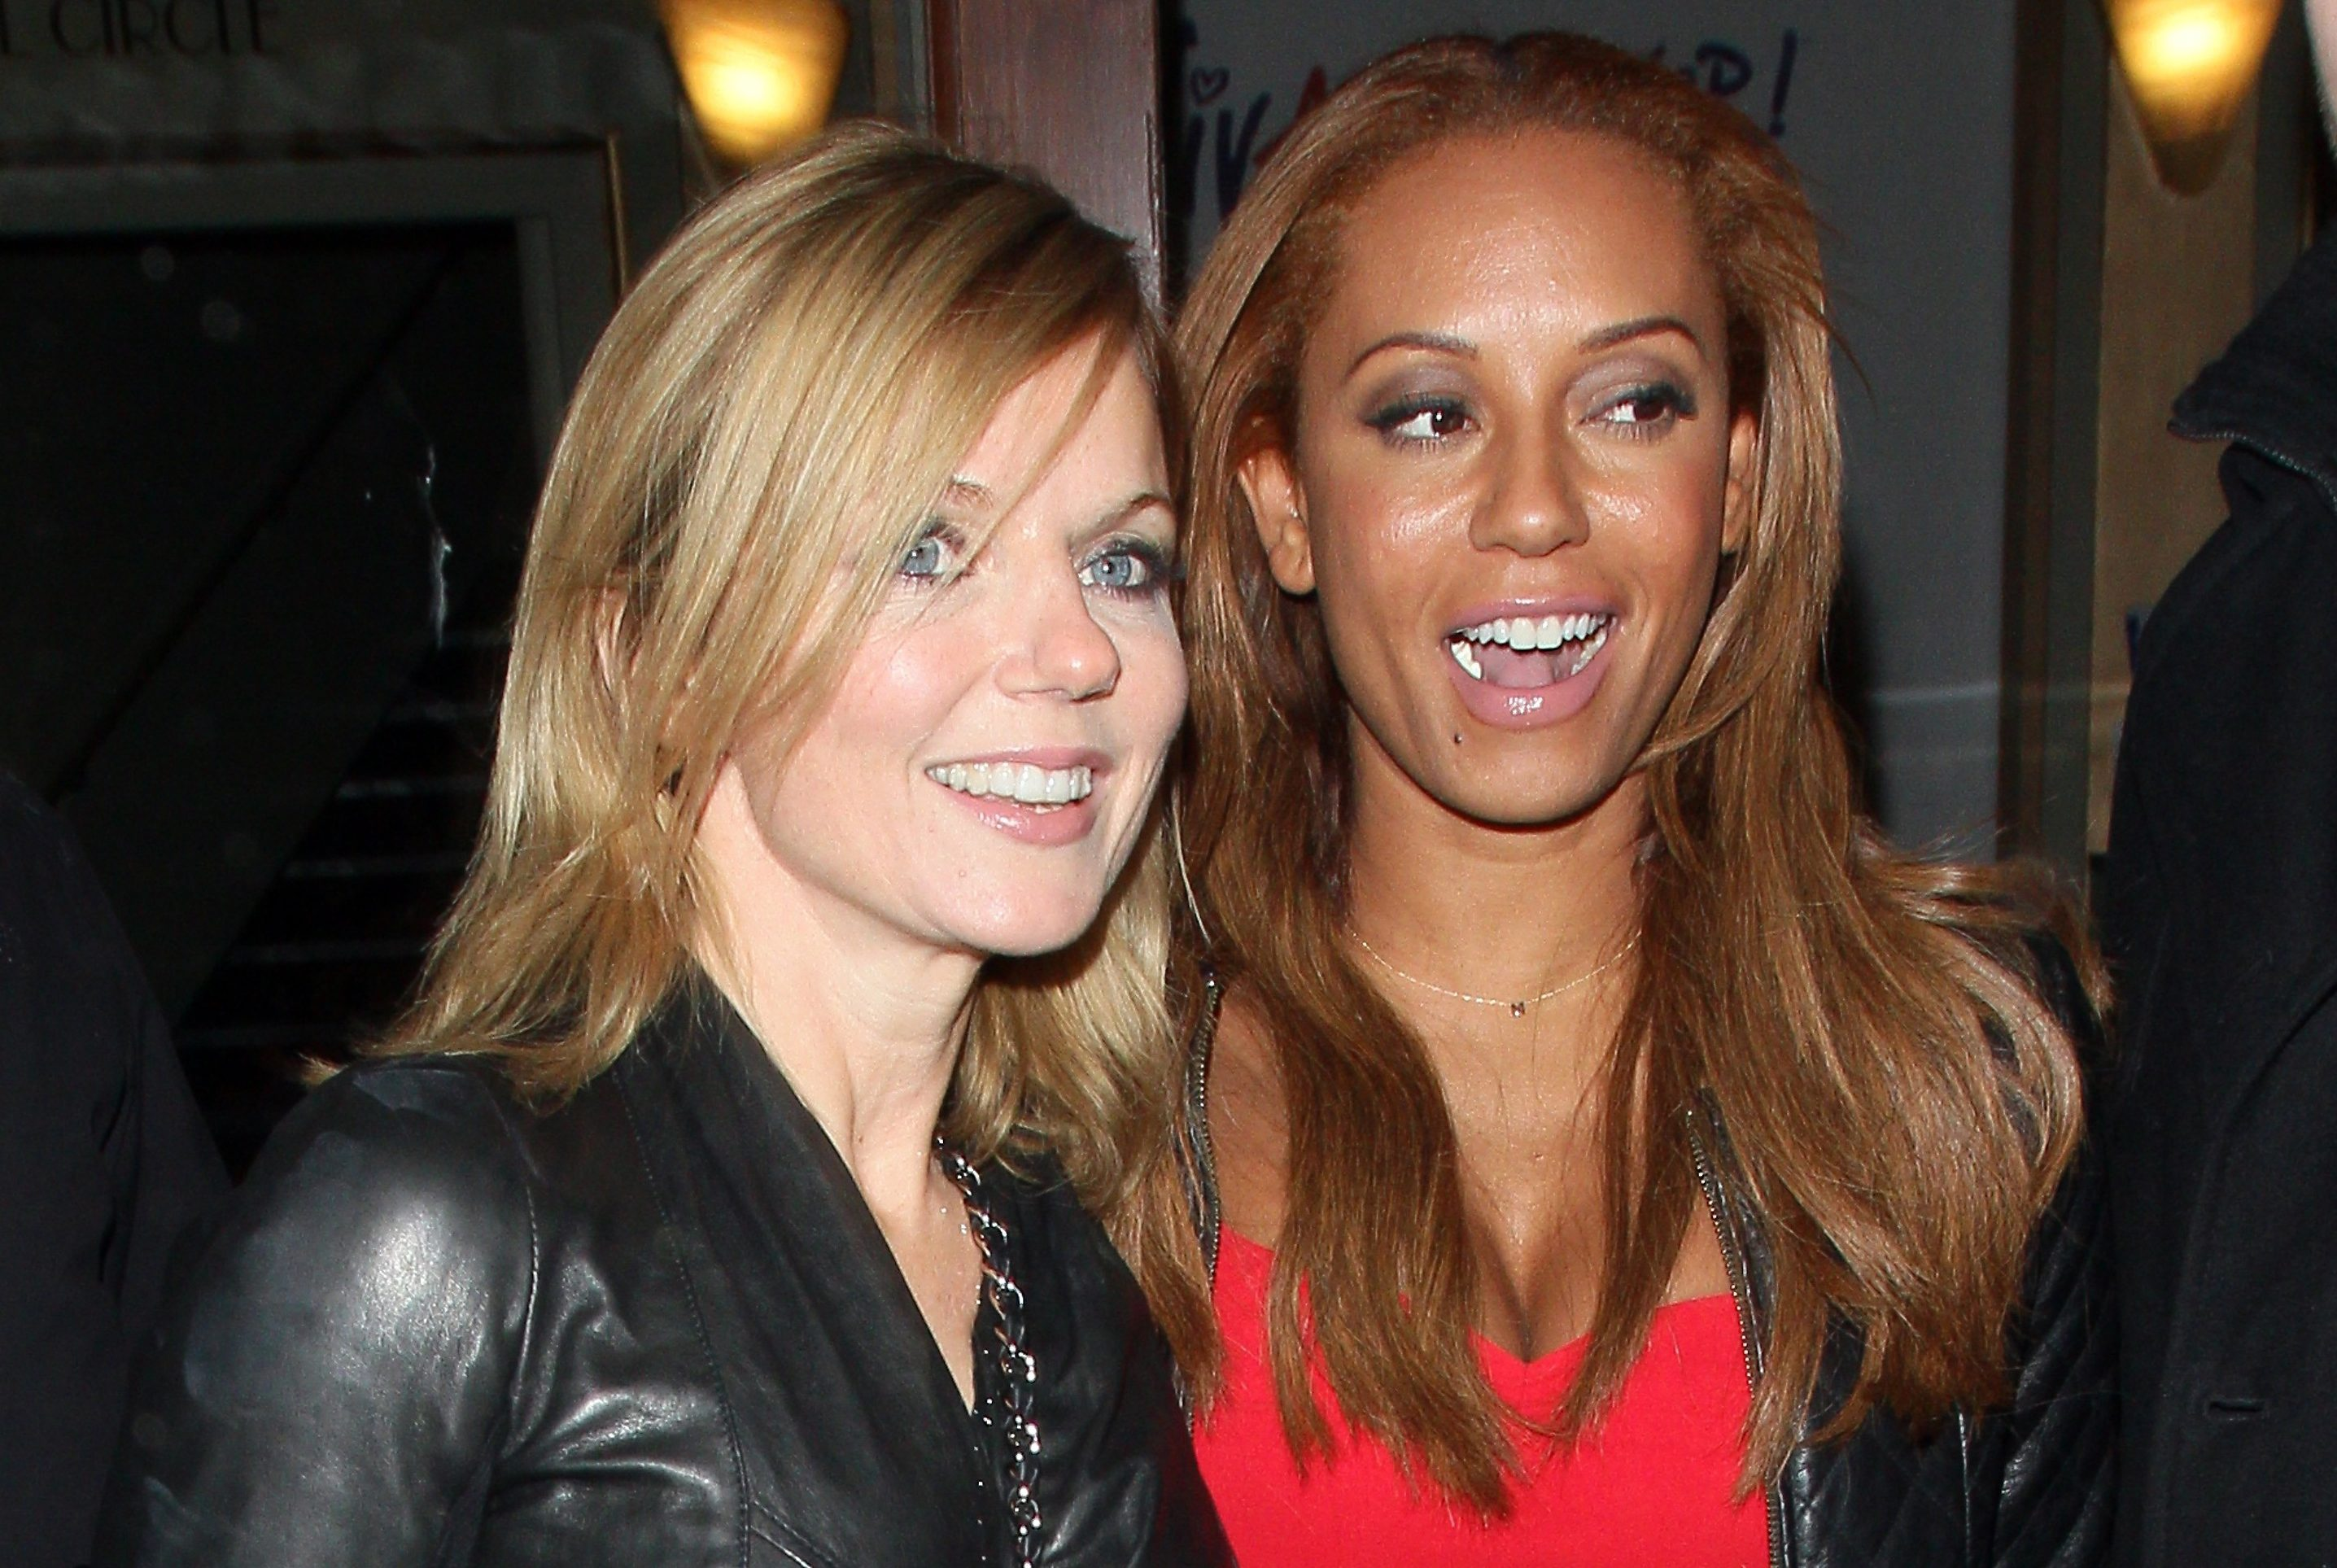 Mel B has 'done damage' to Geri Horner friendship after sex claims – Spice Girls reunion tour will go ahead